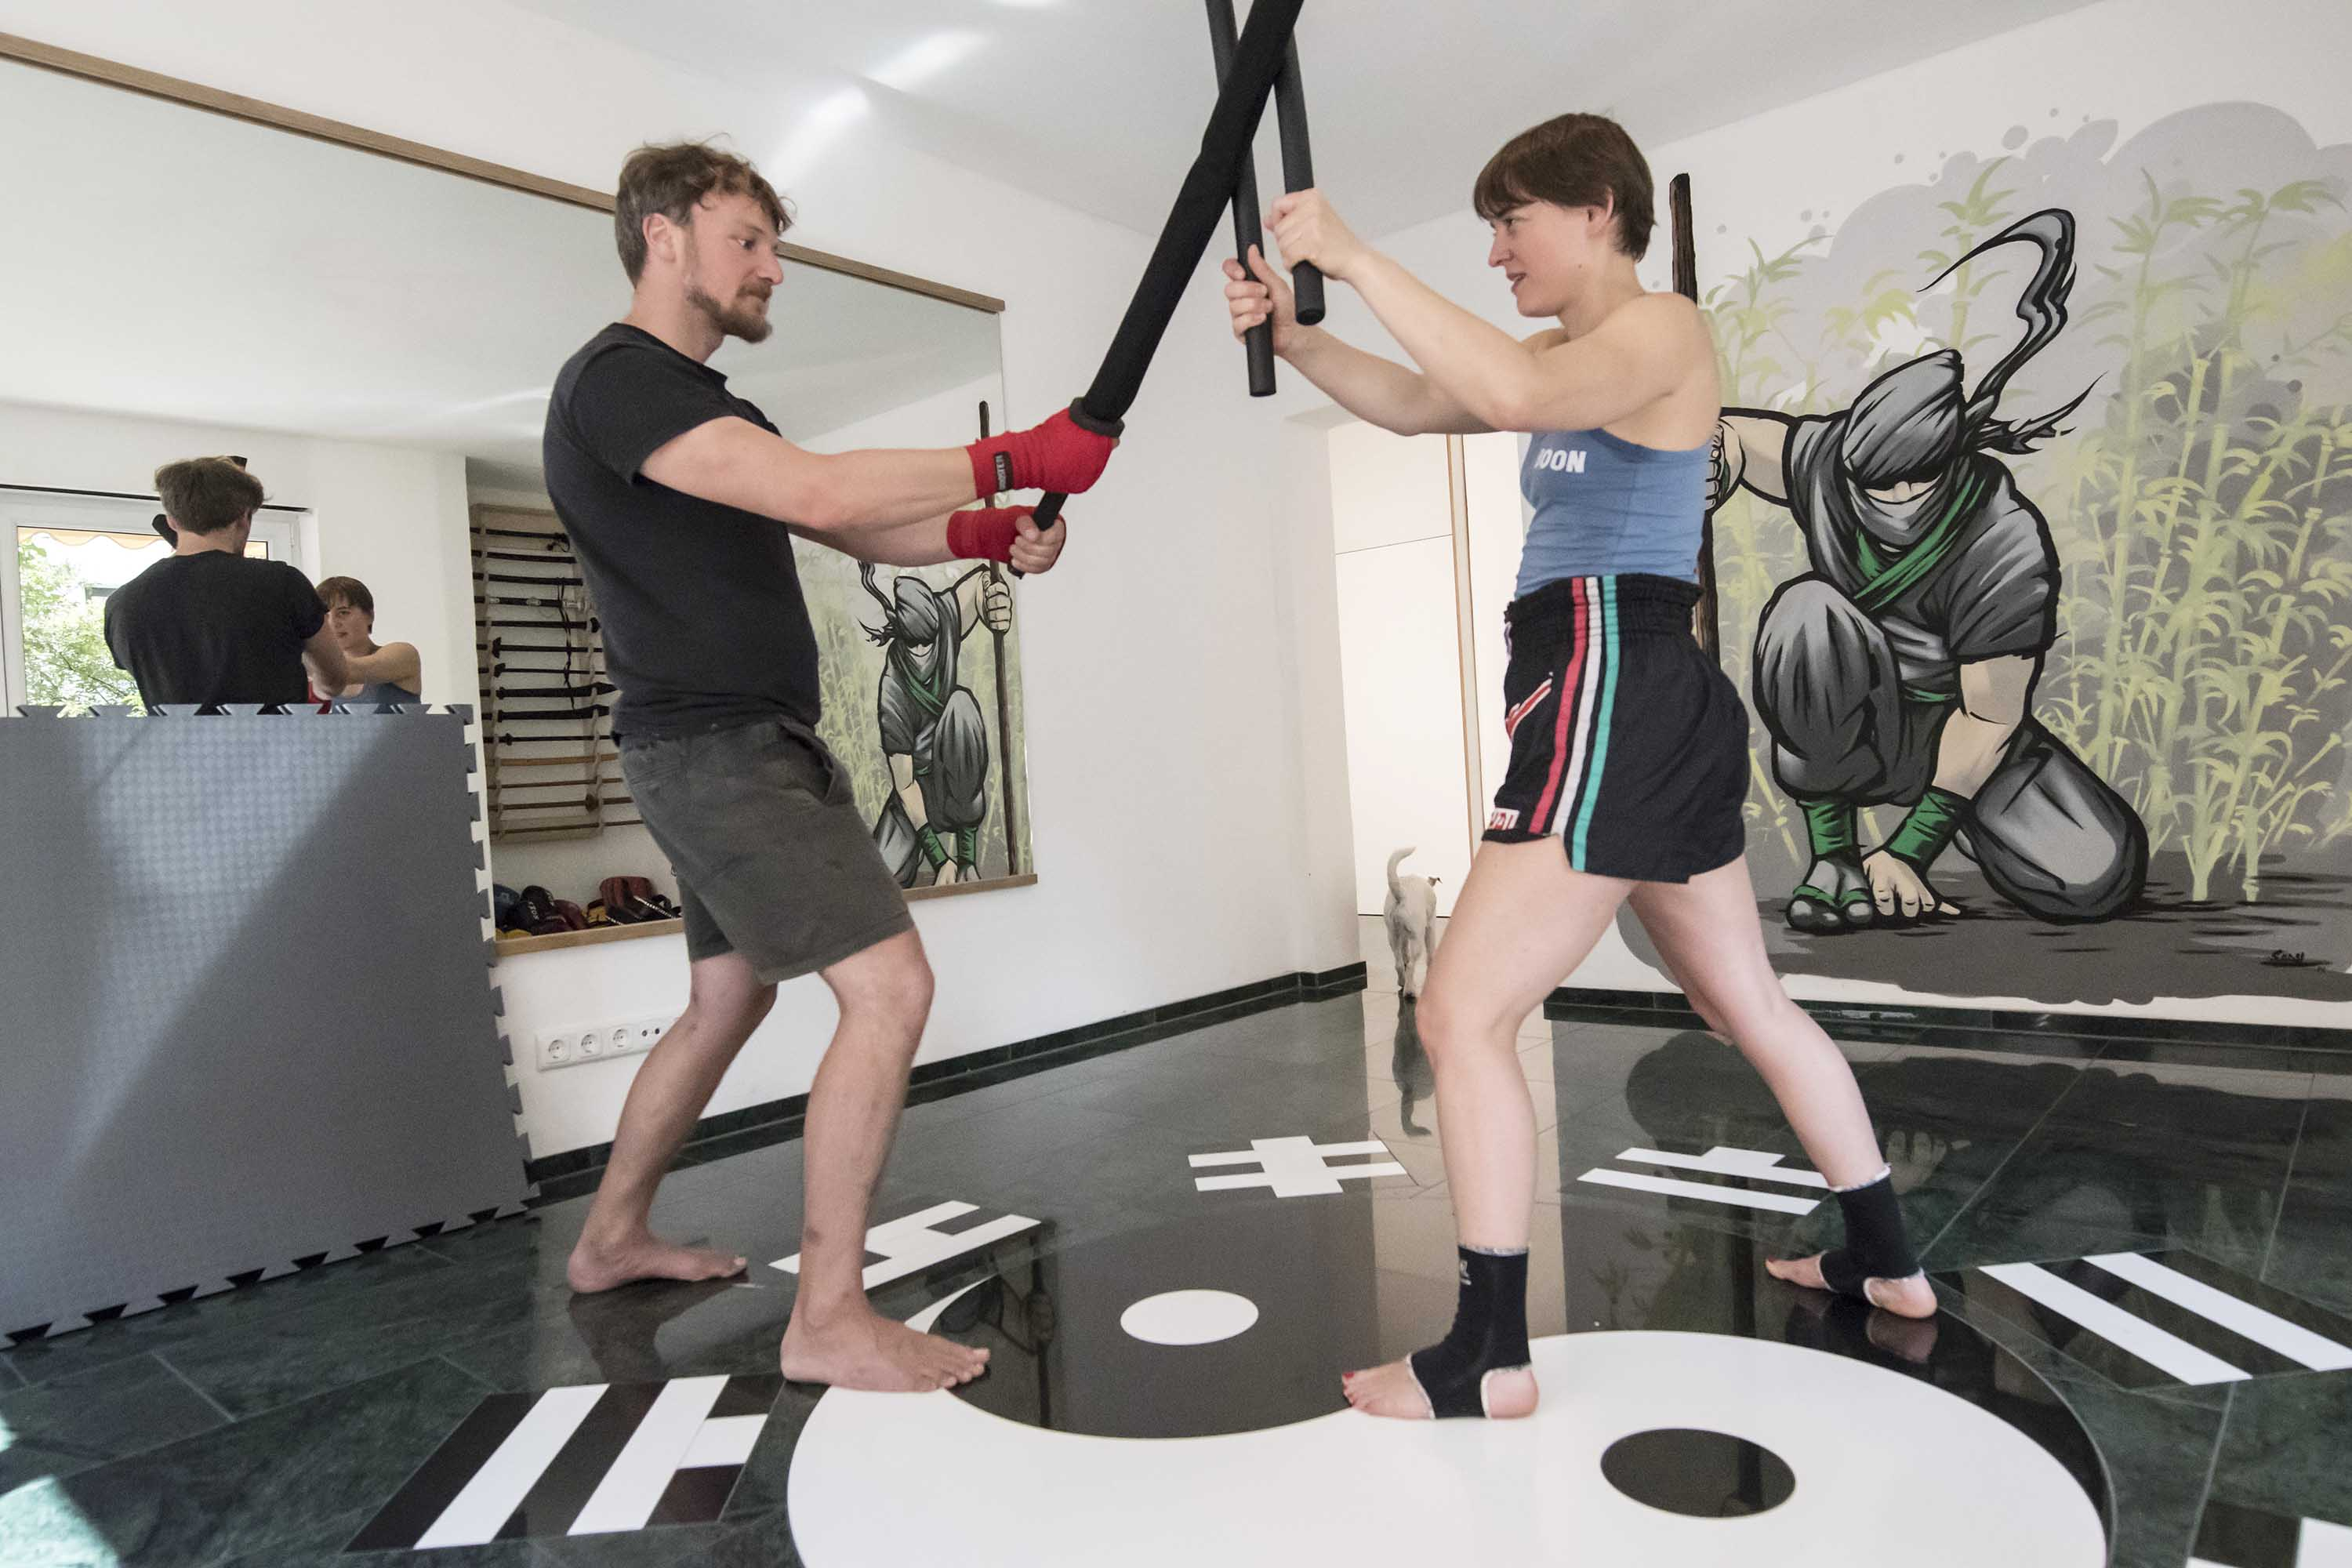 RONIN_DOJO_Traditionelles_Thaiboxen_Waffen_Training_2